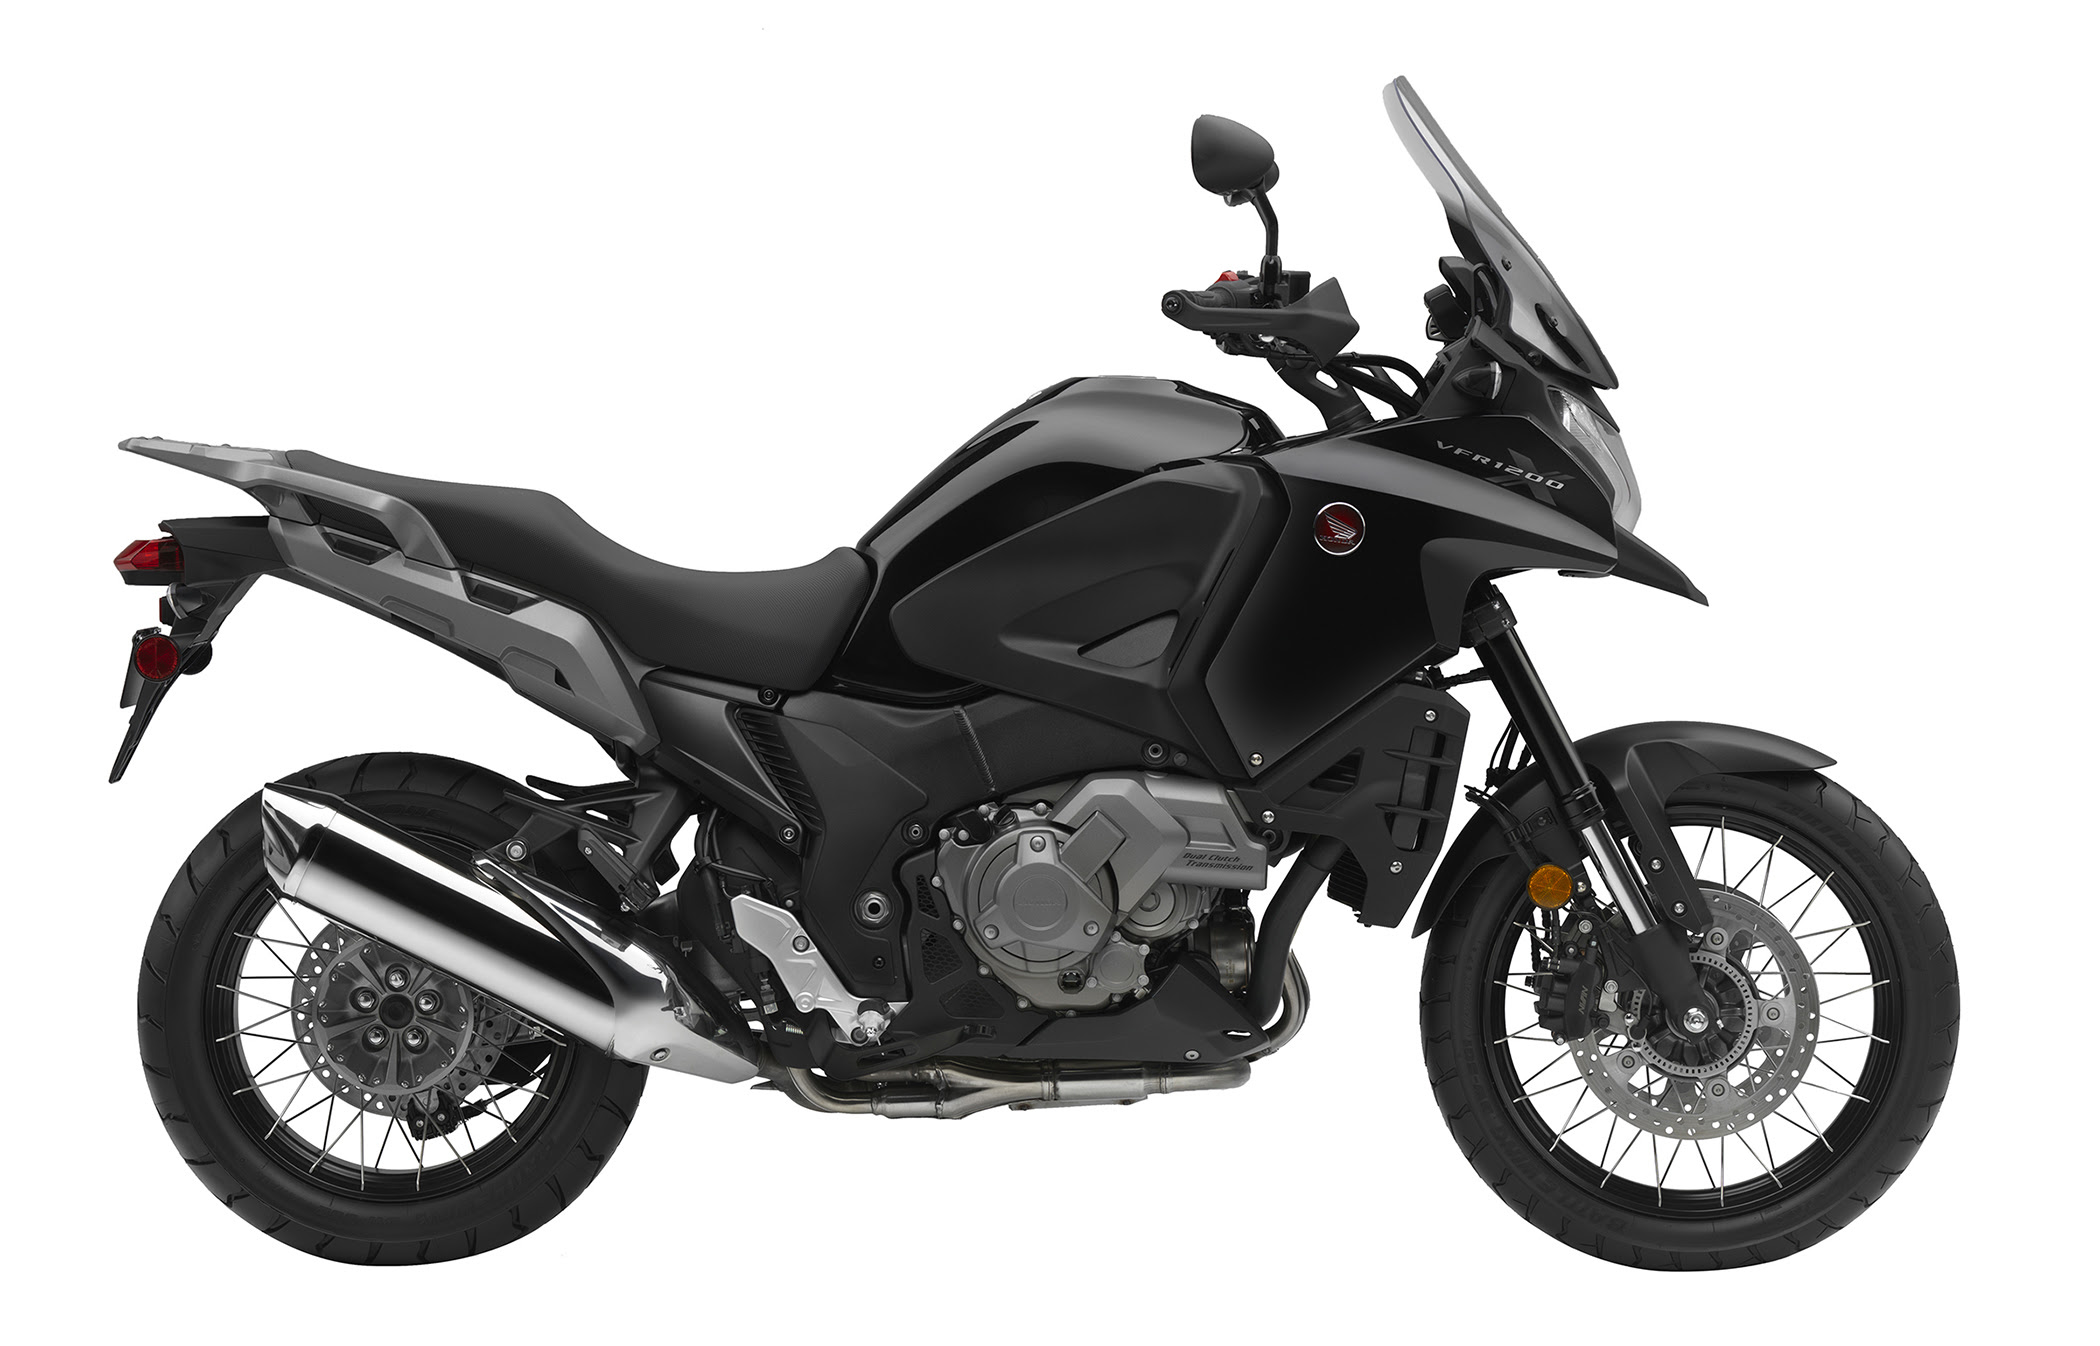 U s market gets honda vfr1200x adventure bike for 2016 for Honda 2016 models